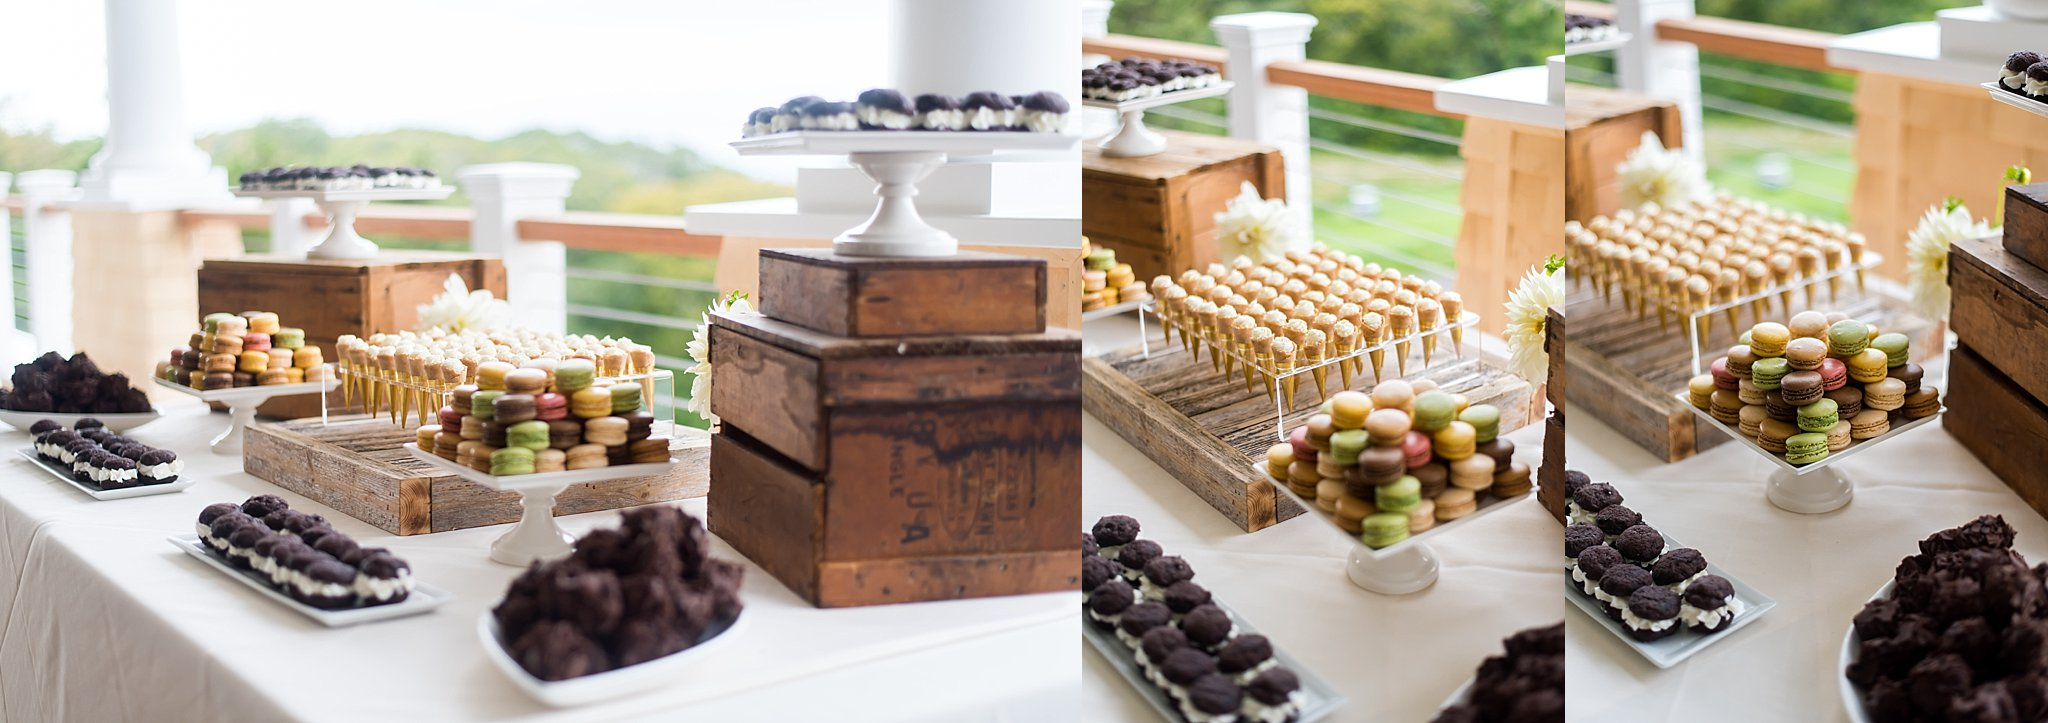 delicious desert table at country club wedding.jpg